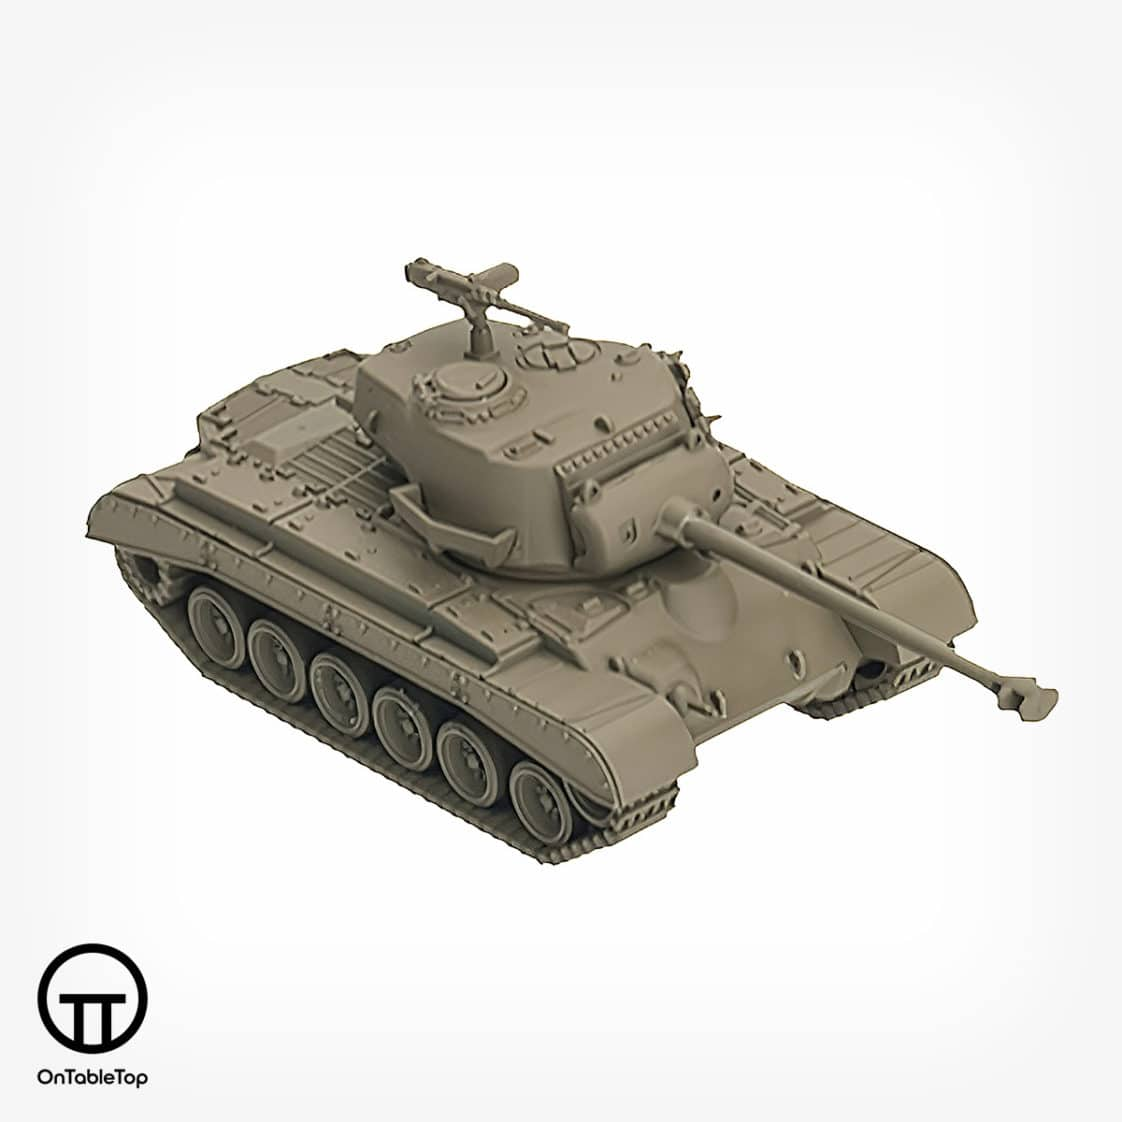 OTT-TANKS03-US-Pershing-Tank-Expansion-Tank-Type-1